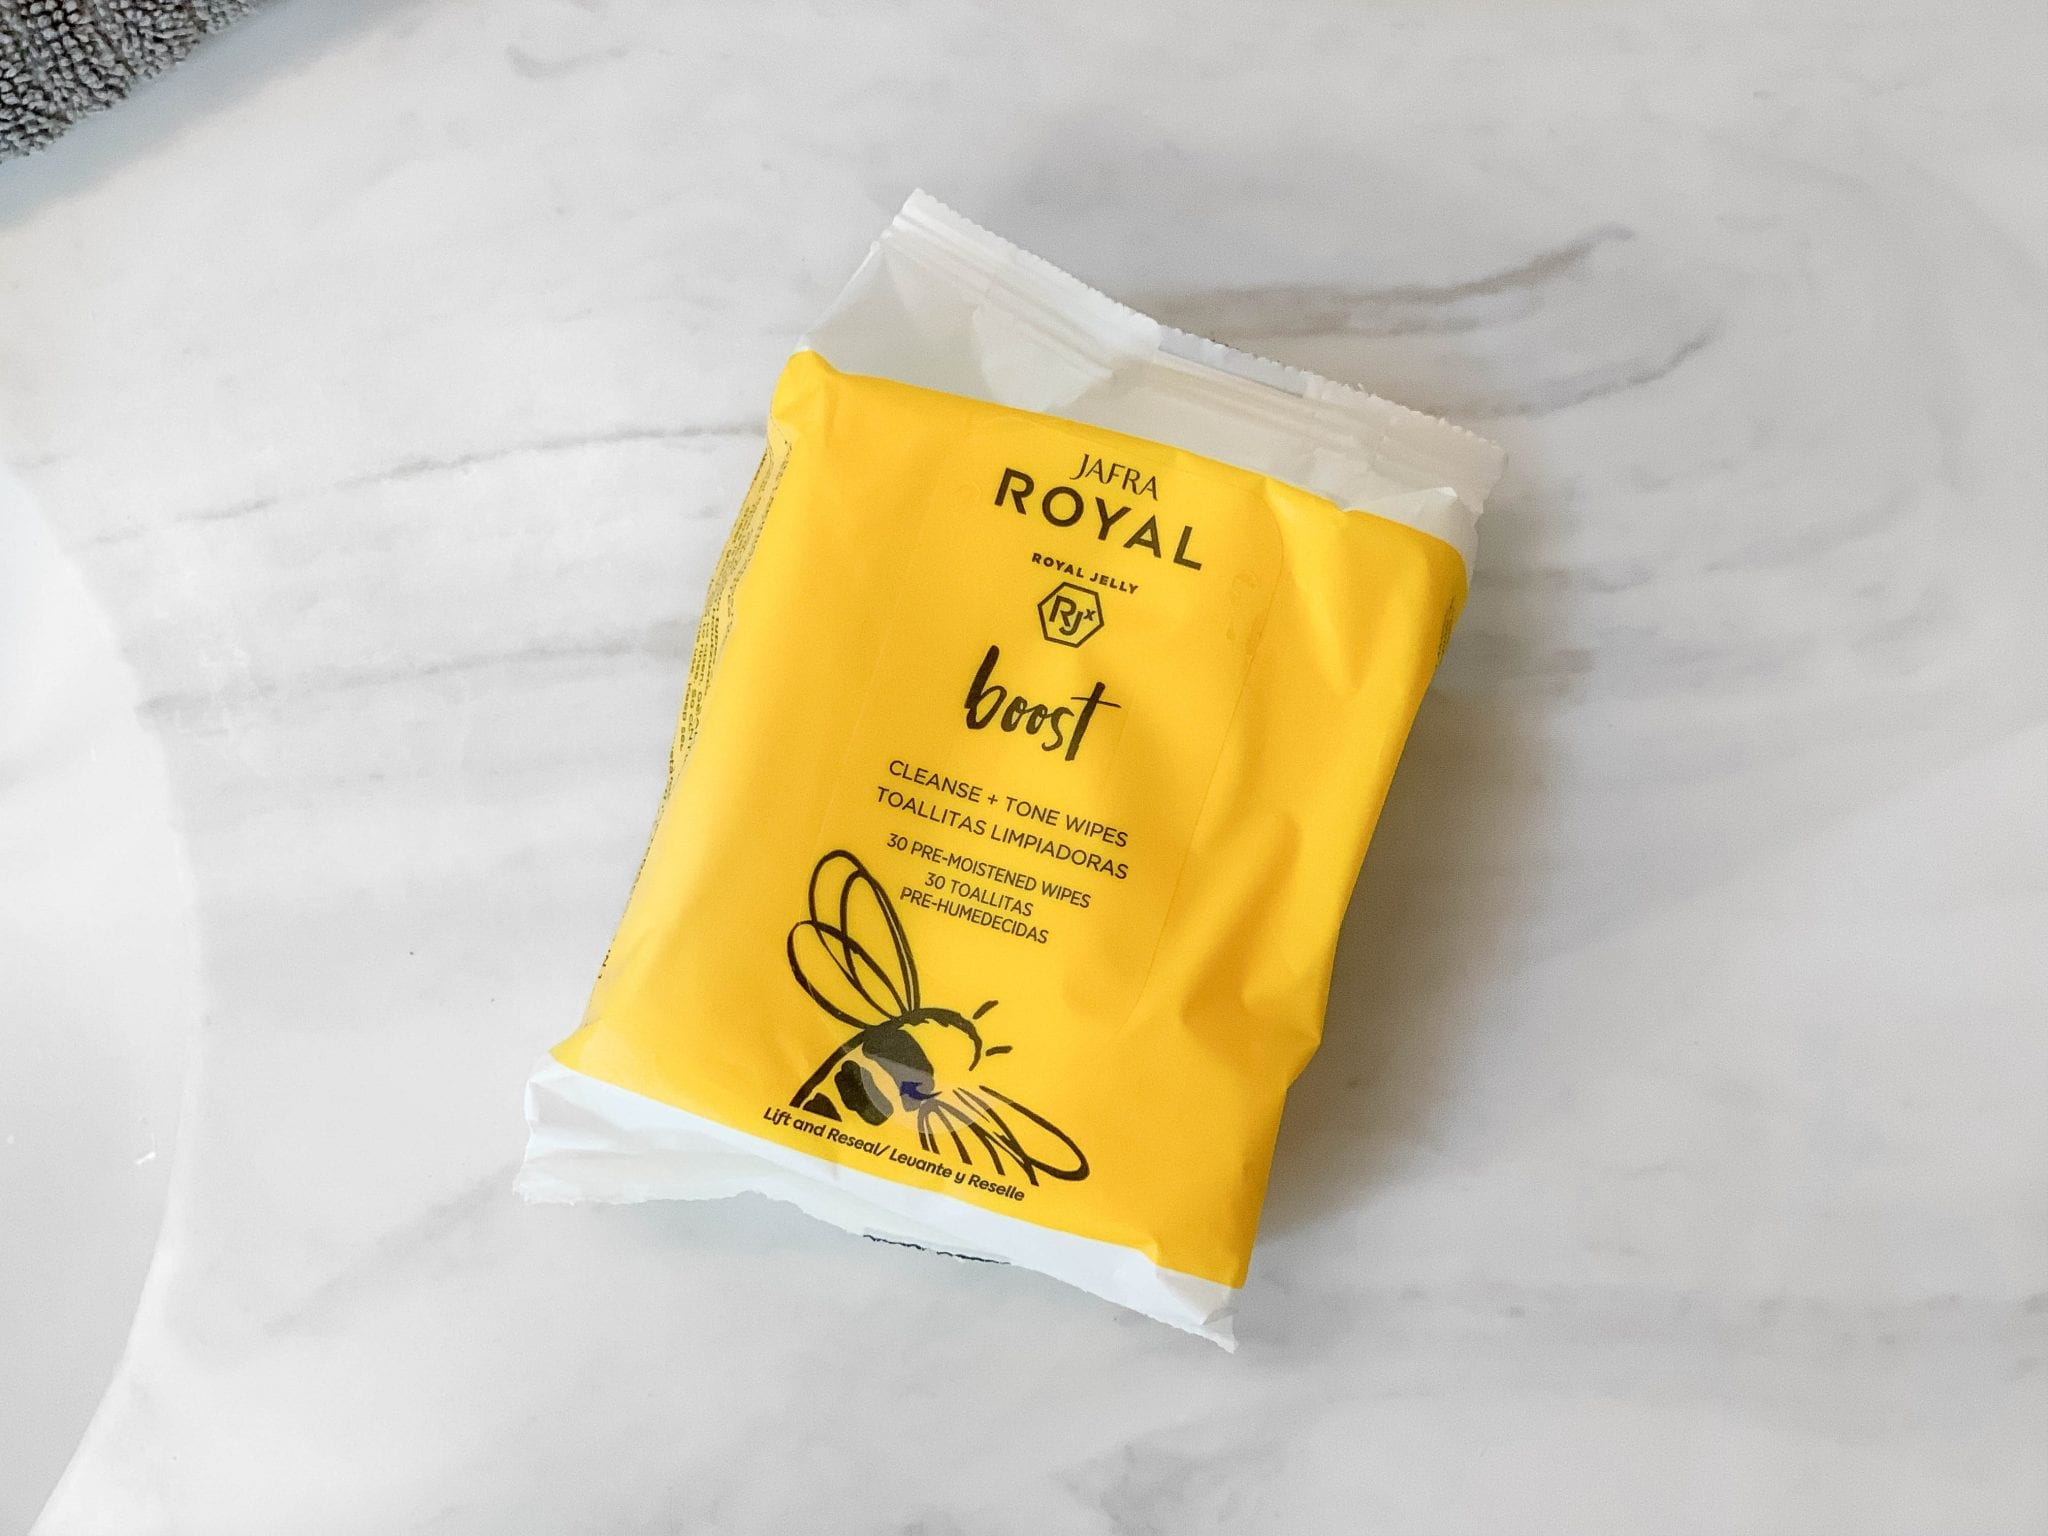 Jafra Cosmetics Royal Boost